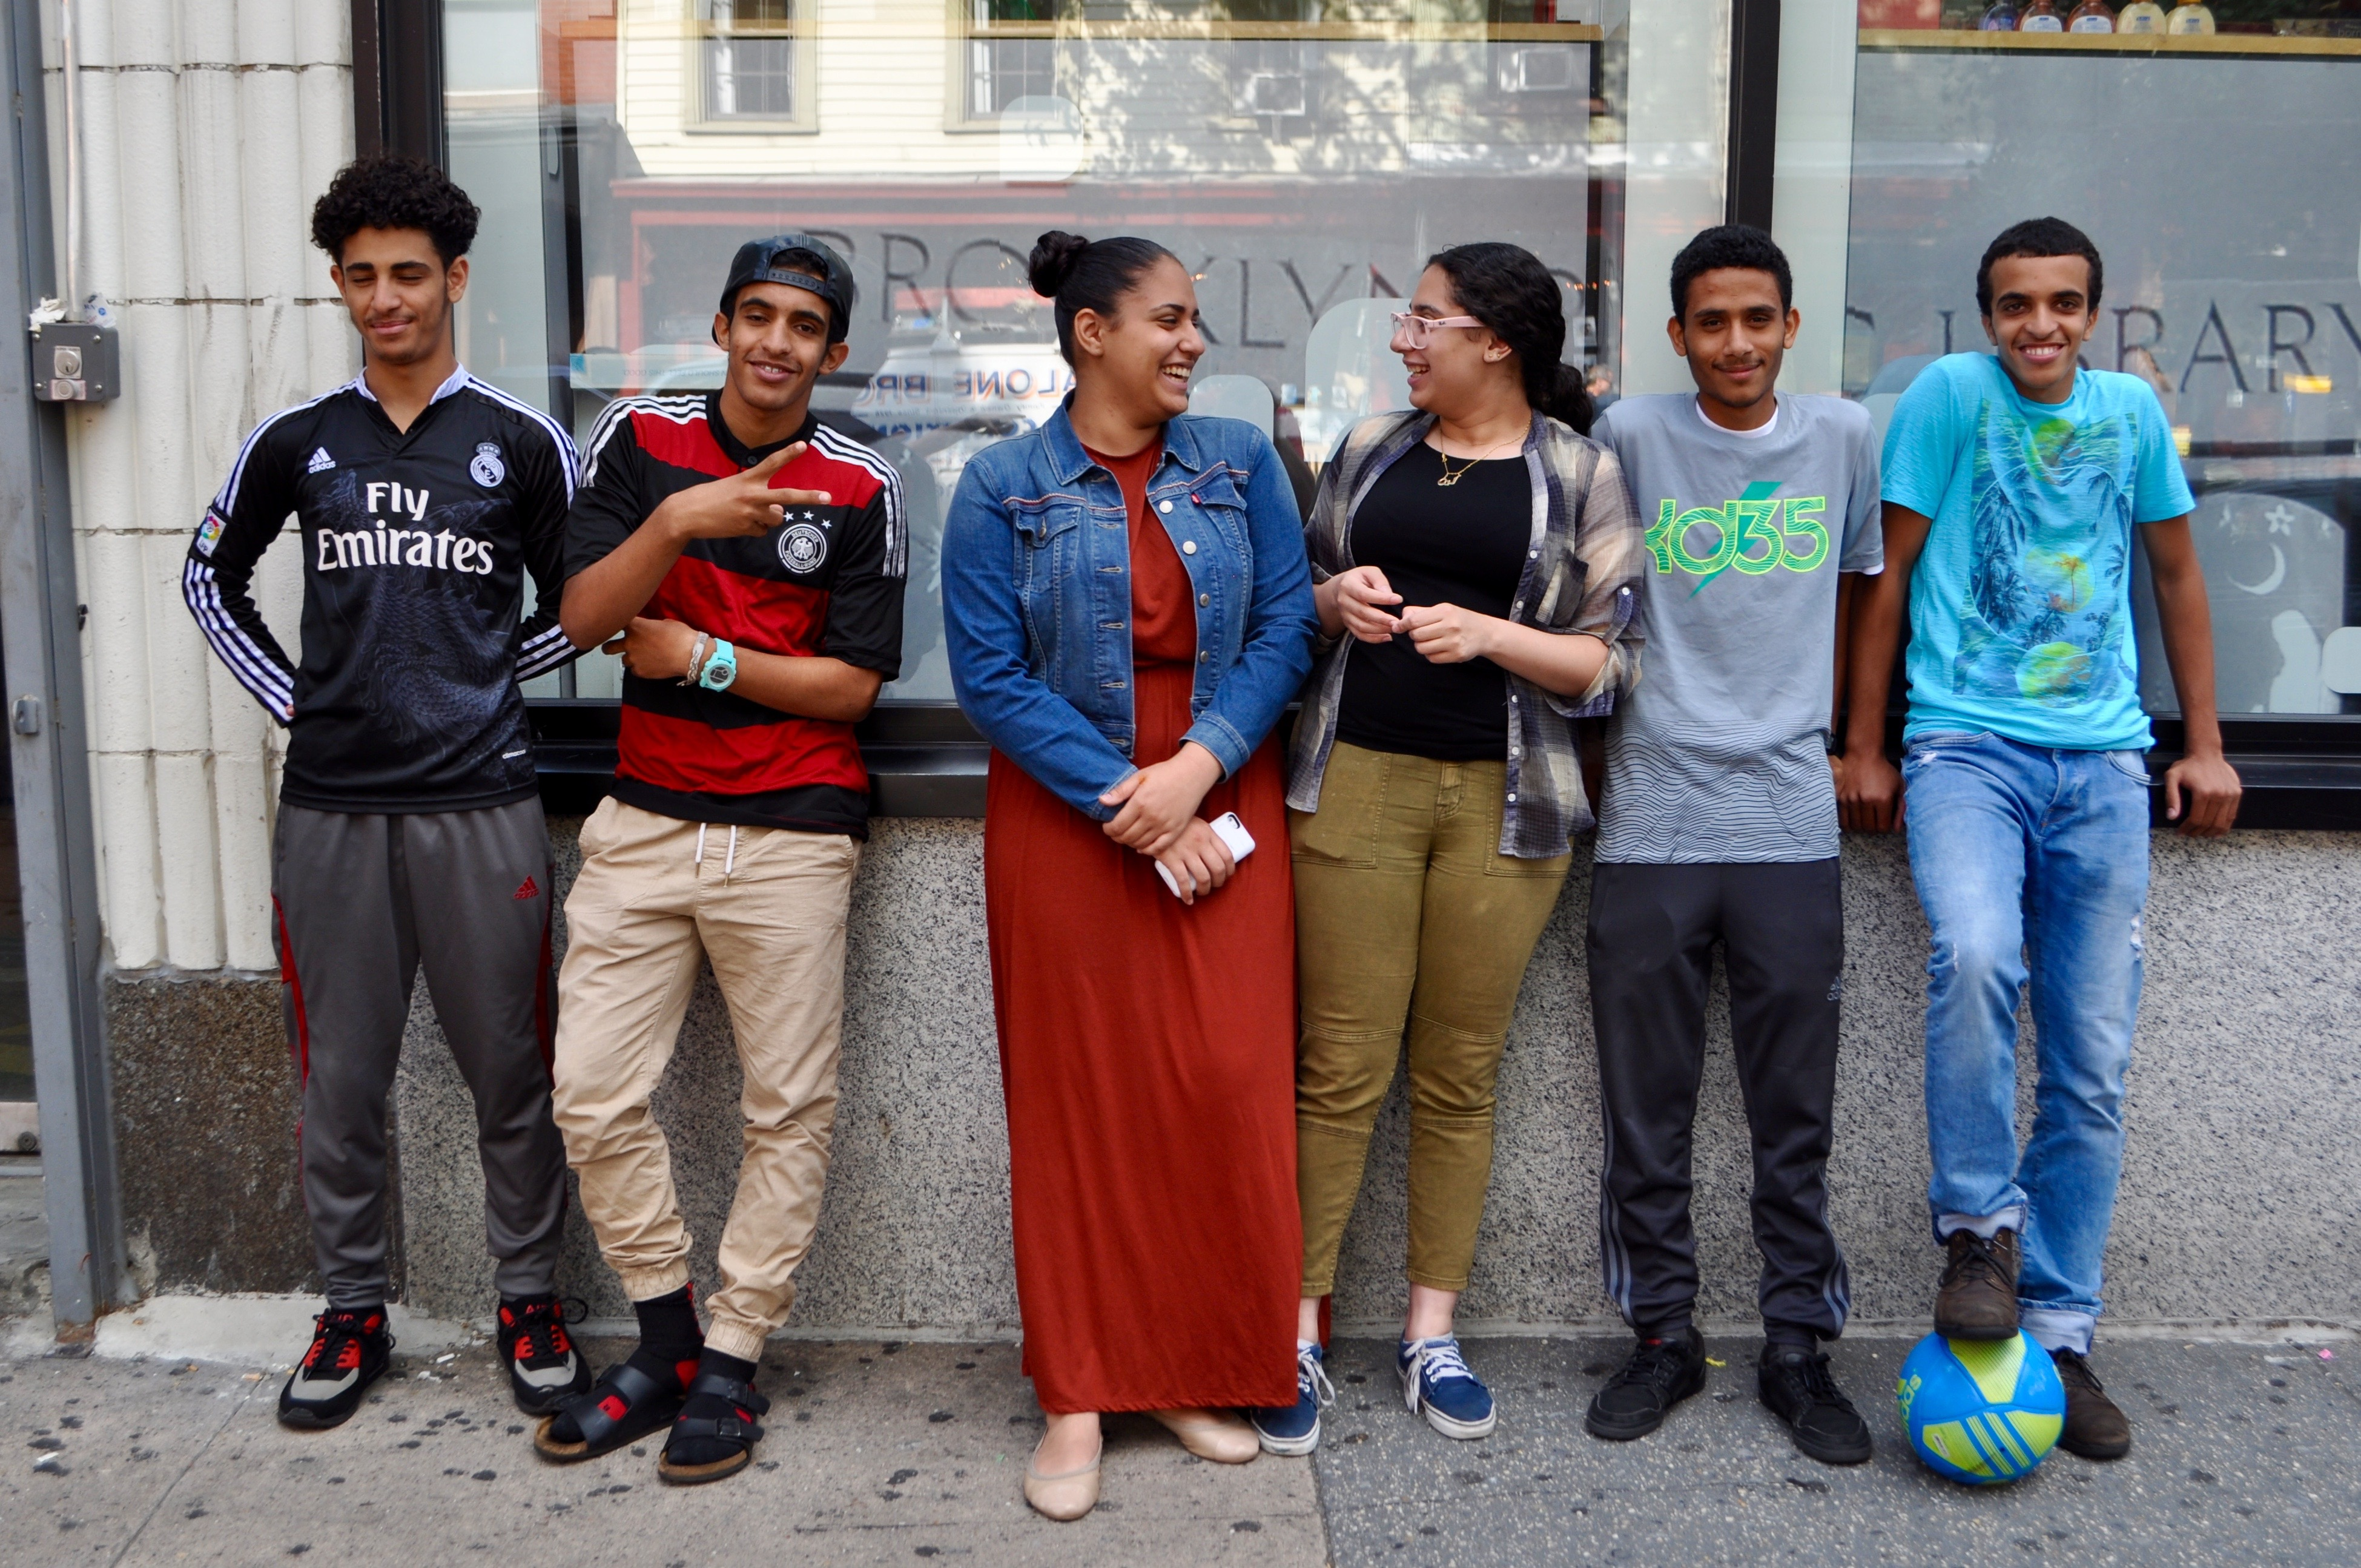 Brooklyn Youth Can Apply For Grants To Help Build Their Regions